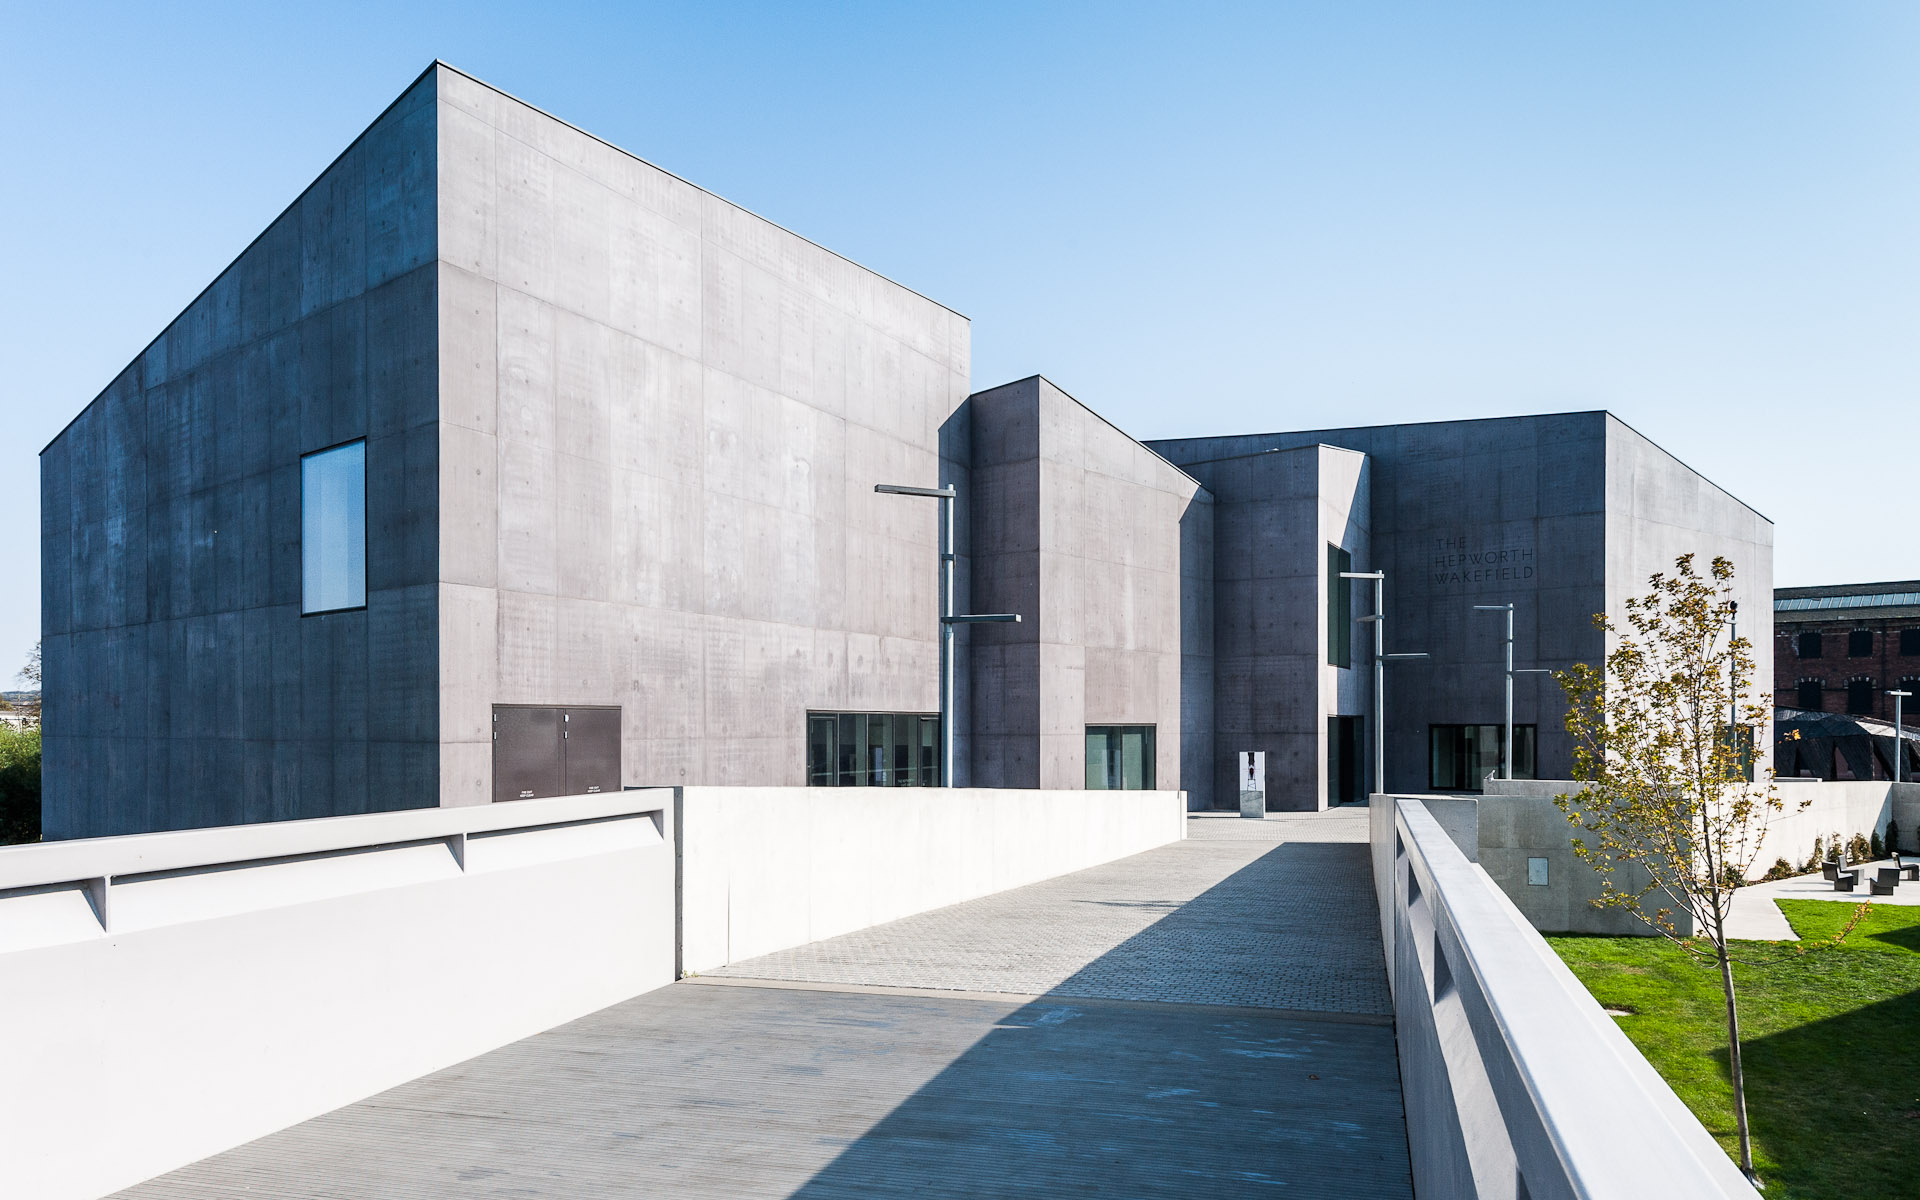 Exterior daytime photograph of Hepworth Wakefield gallery in West Yorkshire England